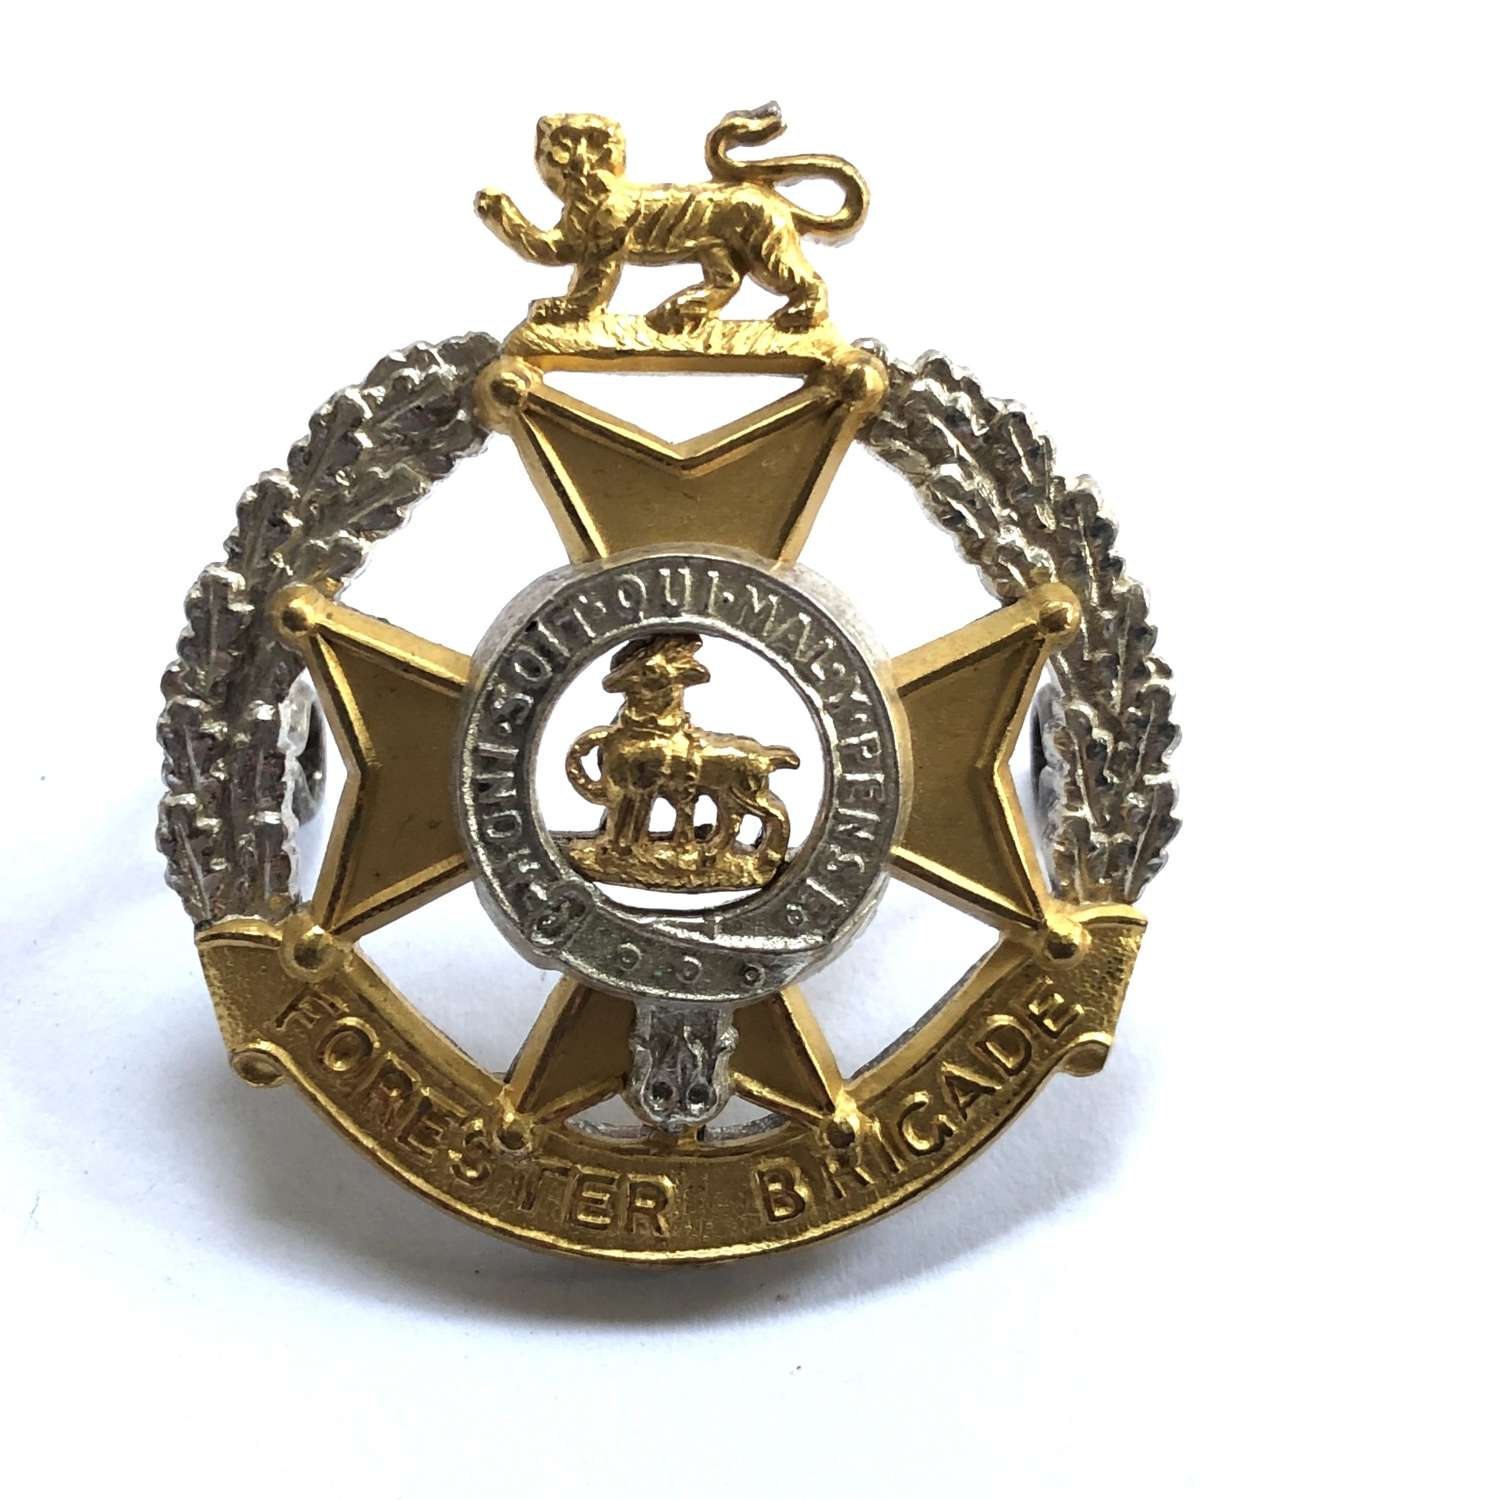 Forester Brigade Officer's silvered and gilt cap badge circa 1958-64